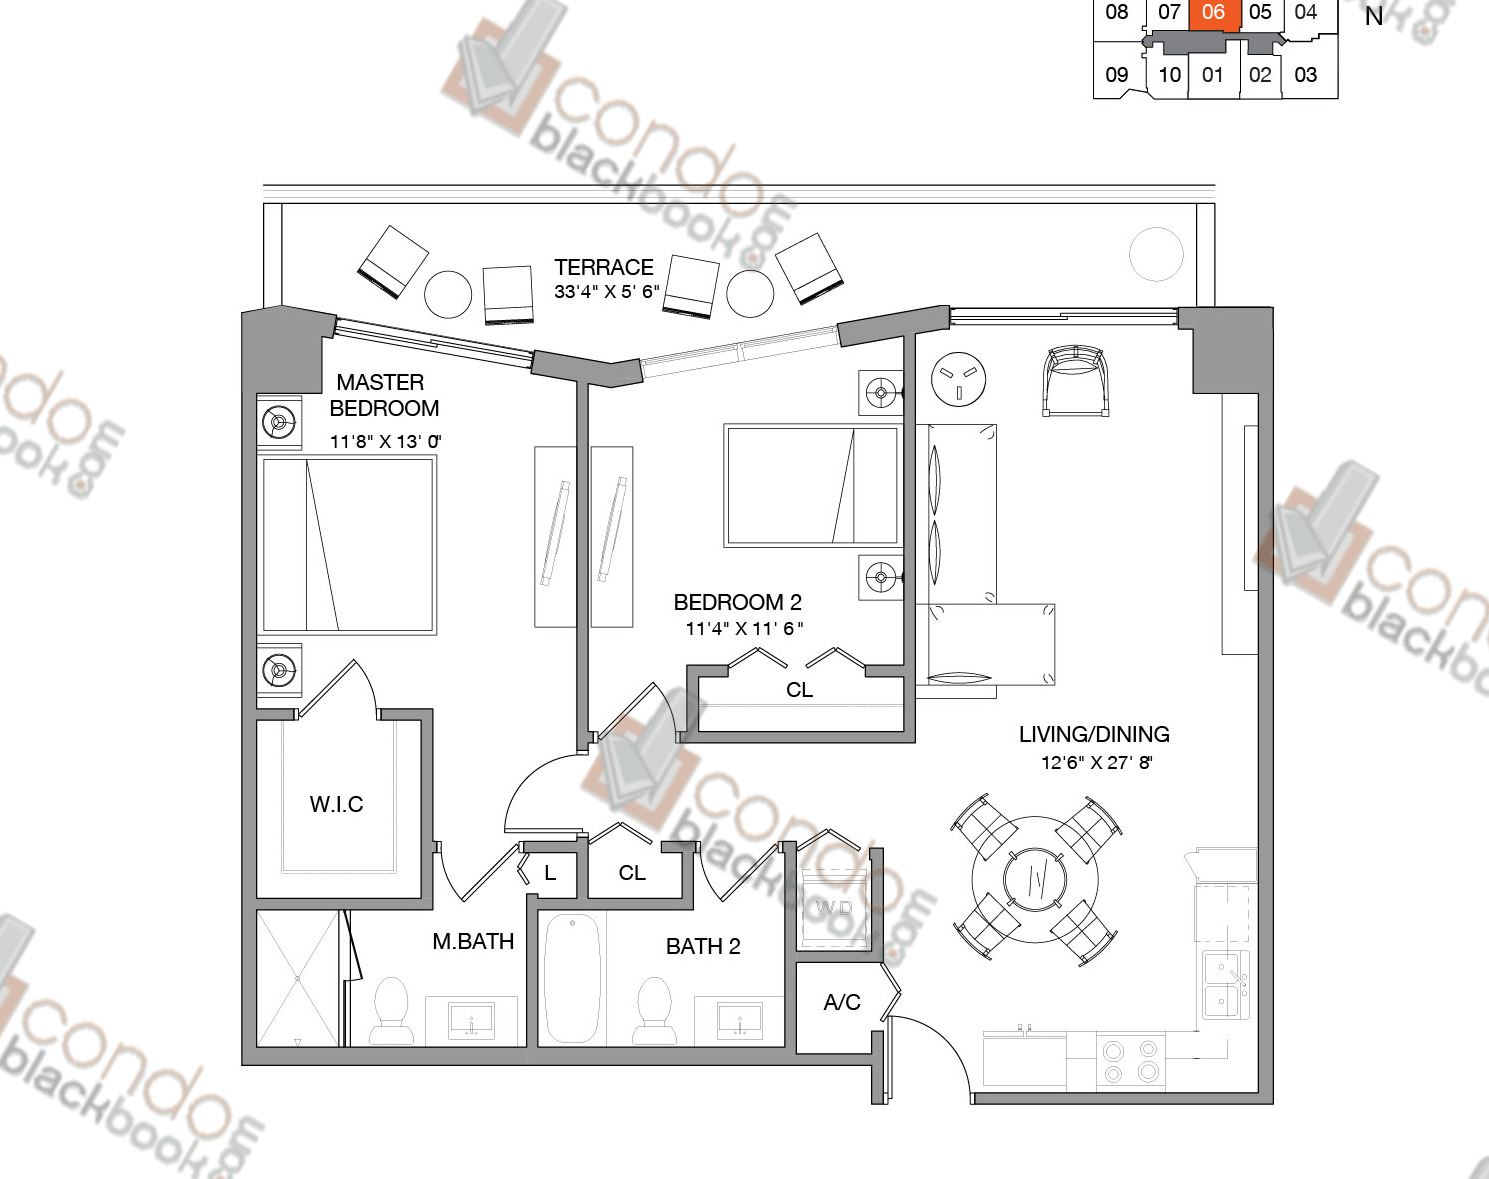 Floor plan for Brickell Ten Brickell Miami, model Residence Six, line 06,  2/2 bedrooms, 1,009 sq ft